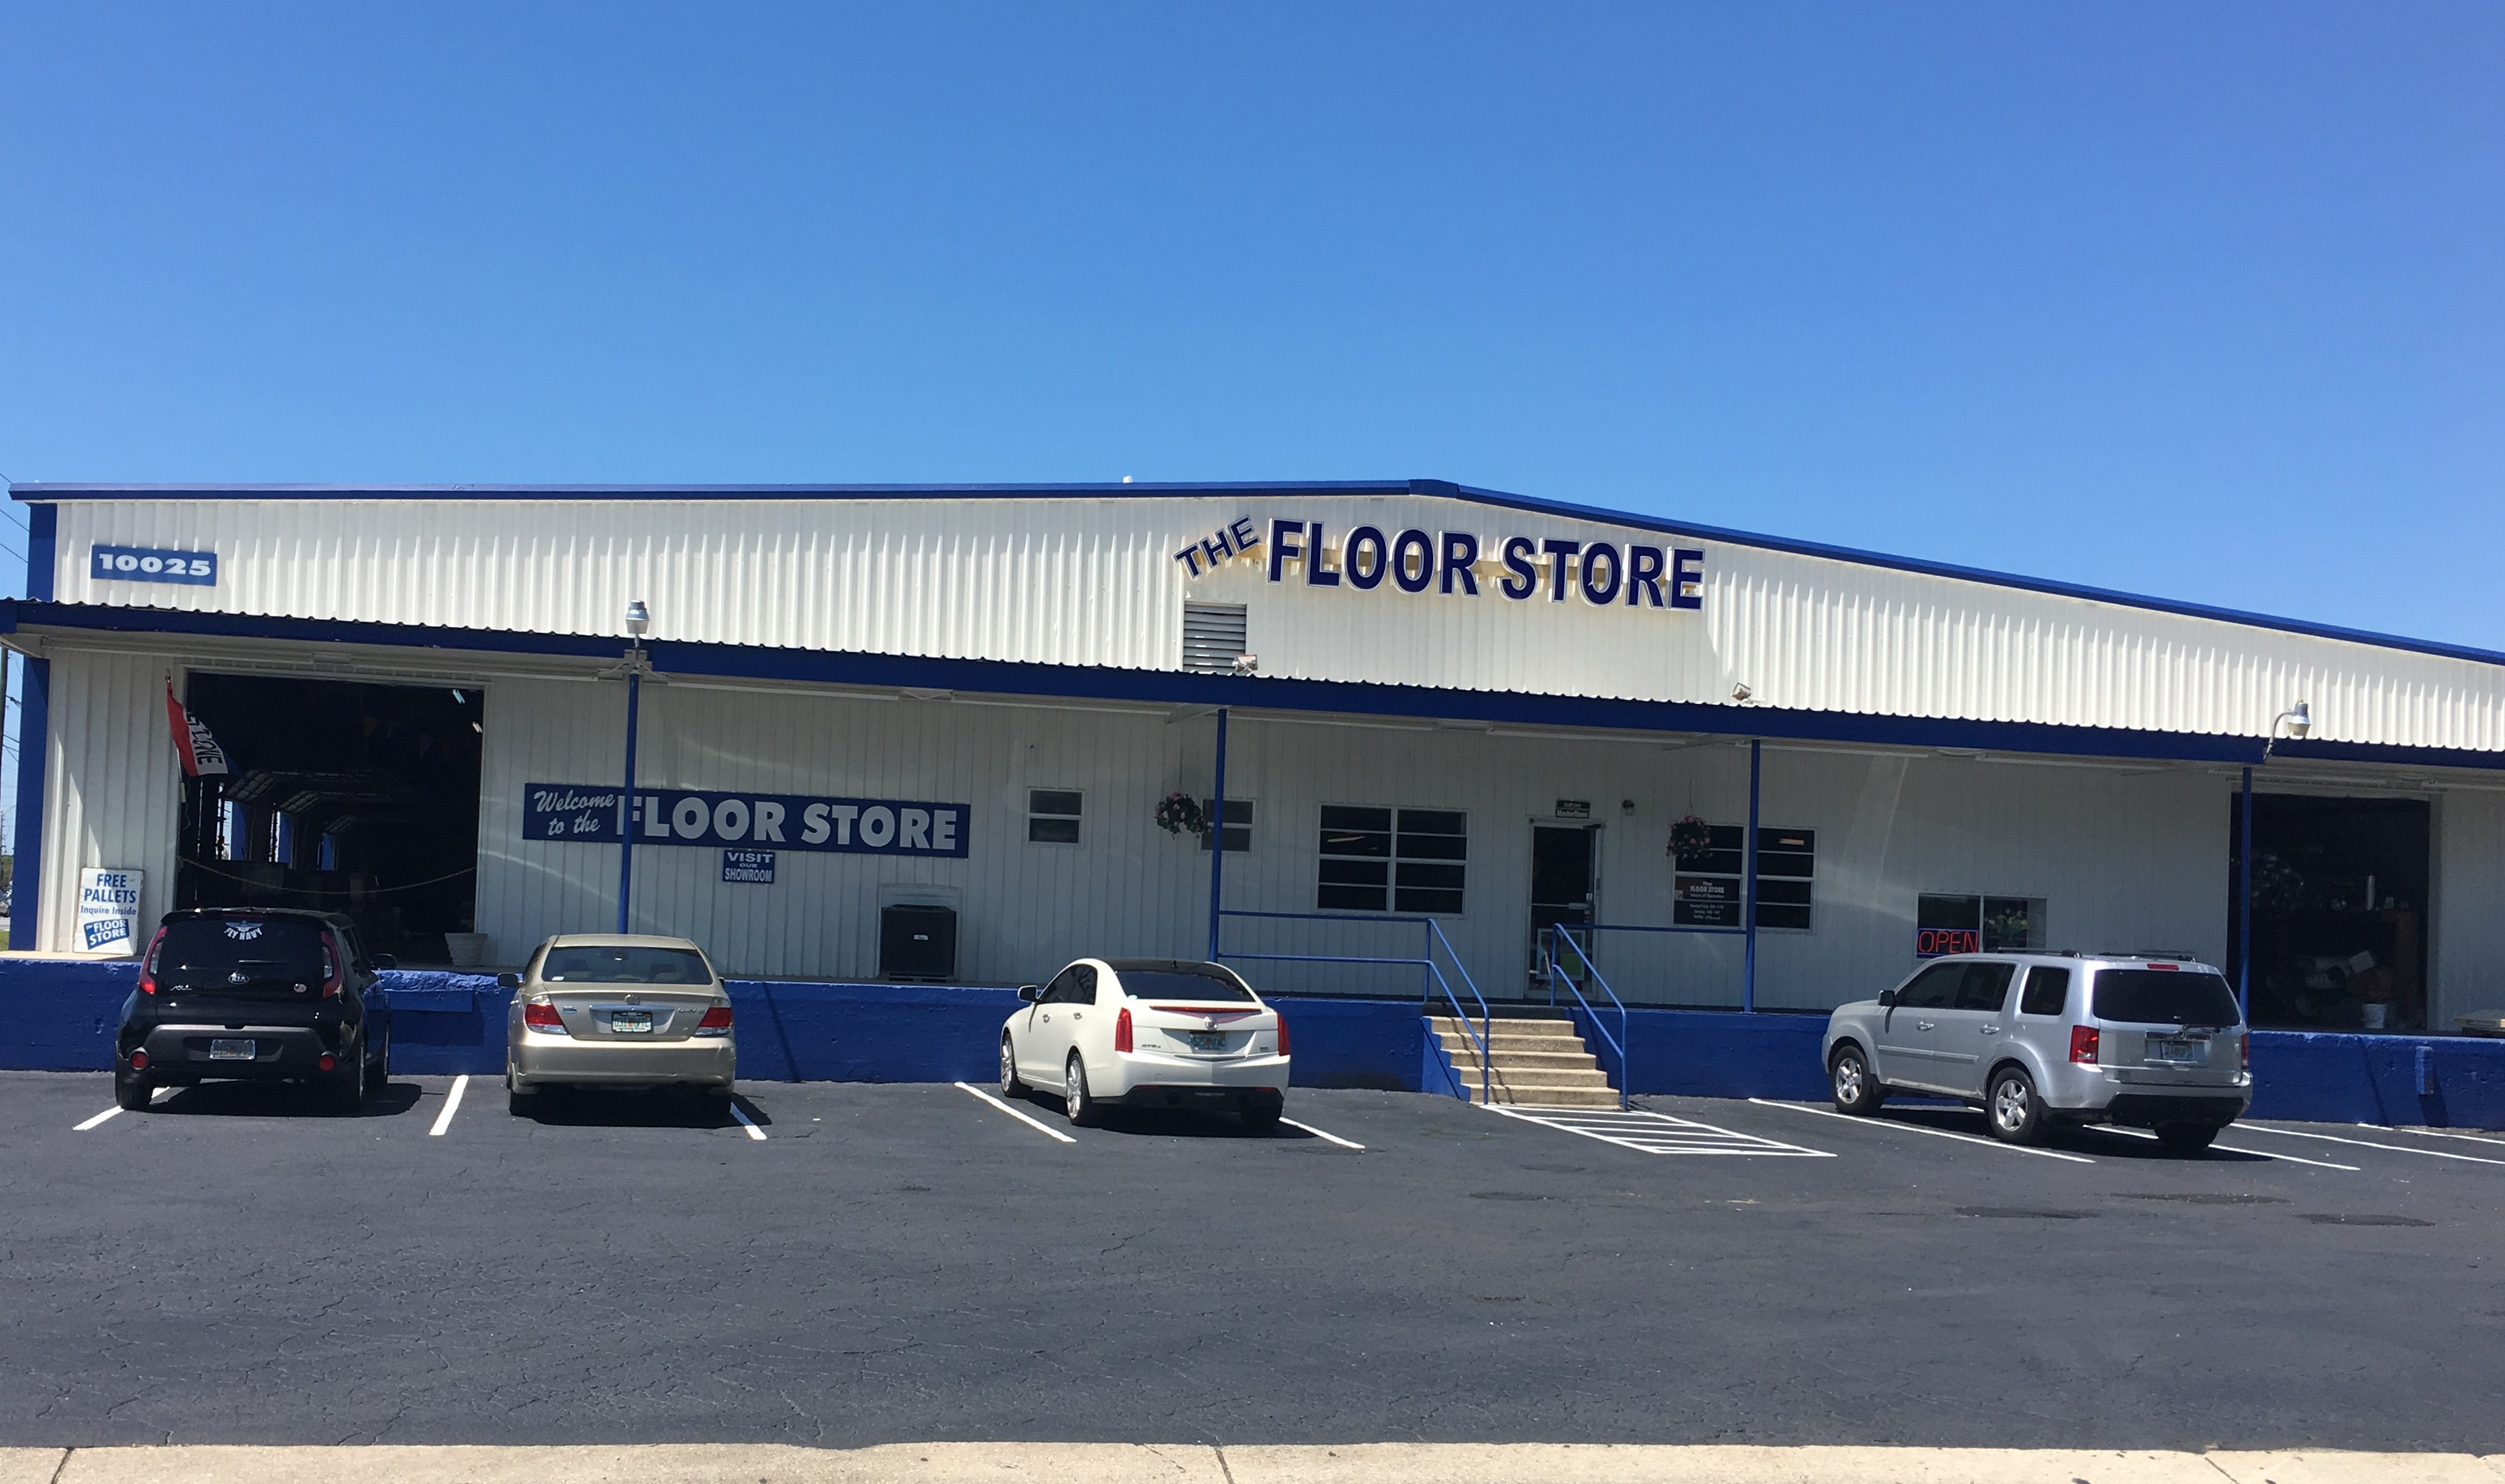 THE FLOOR STORE store front